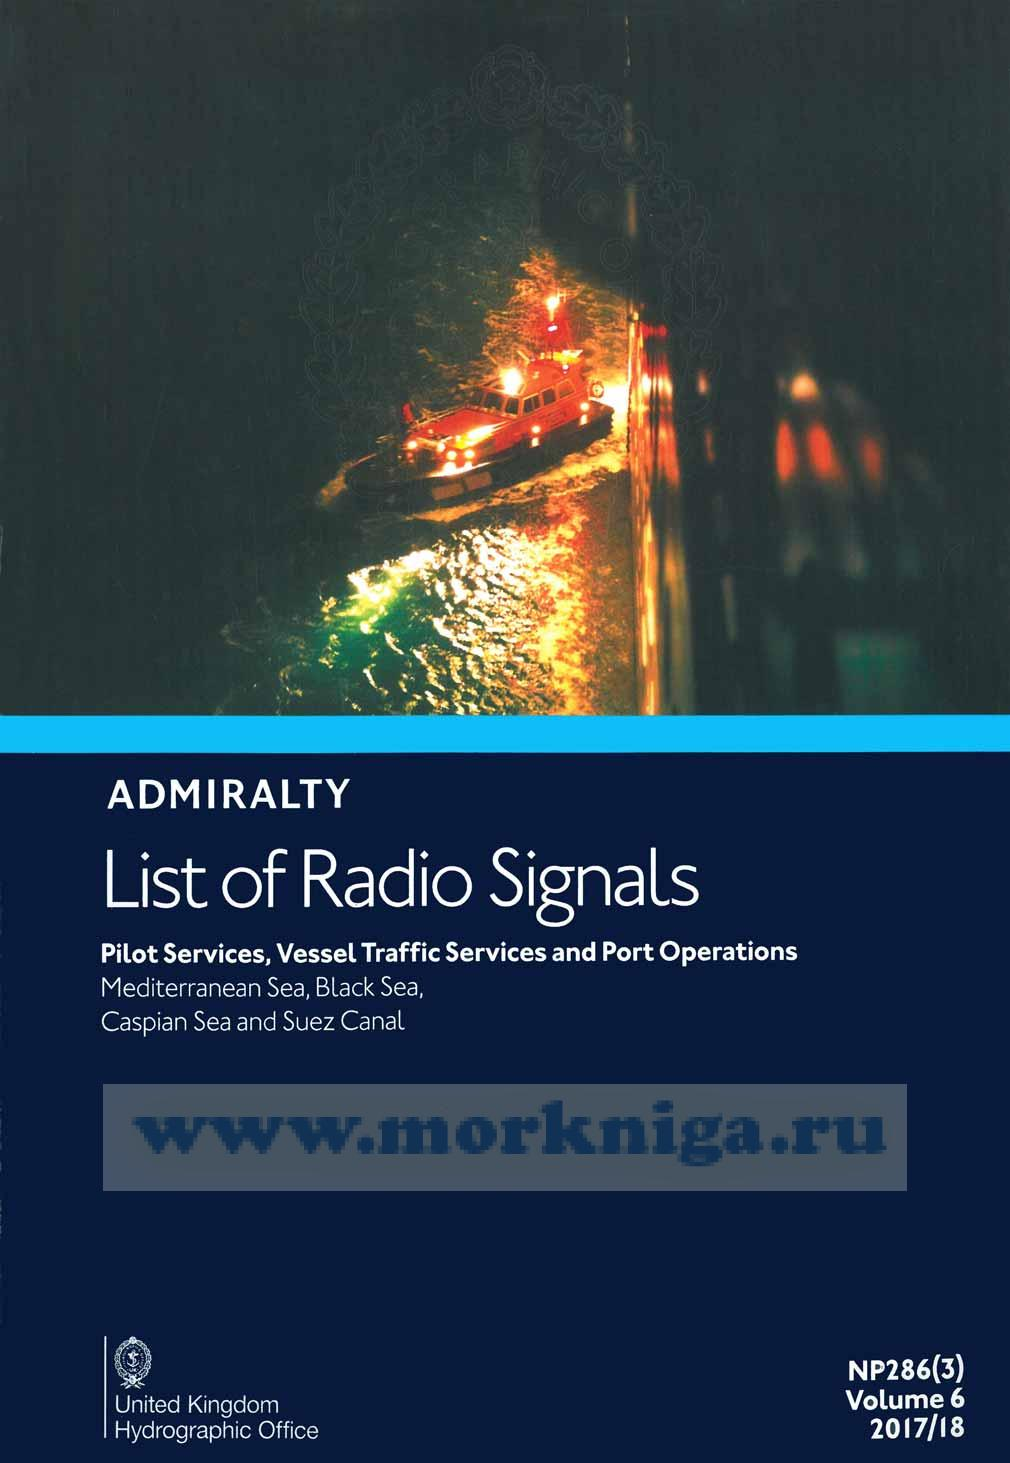 Admiralty list of radio signals. Vol 6. NP286(3) (ALRS). Pilot services, vessel traffic services and port operations. Mediterranean Sea, Black Sea and Suez Canal. 2017/2018